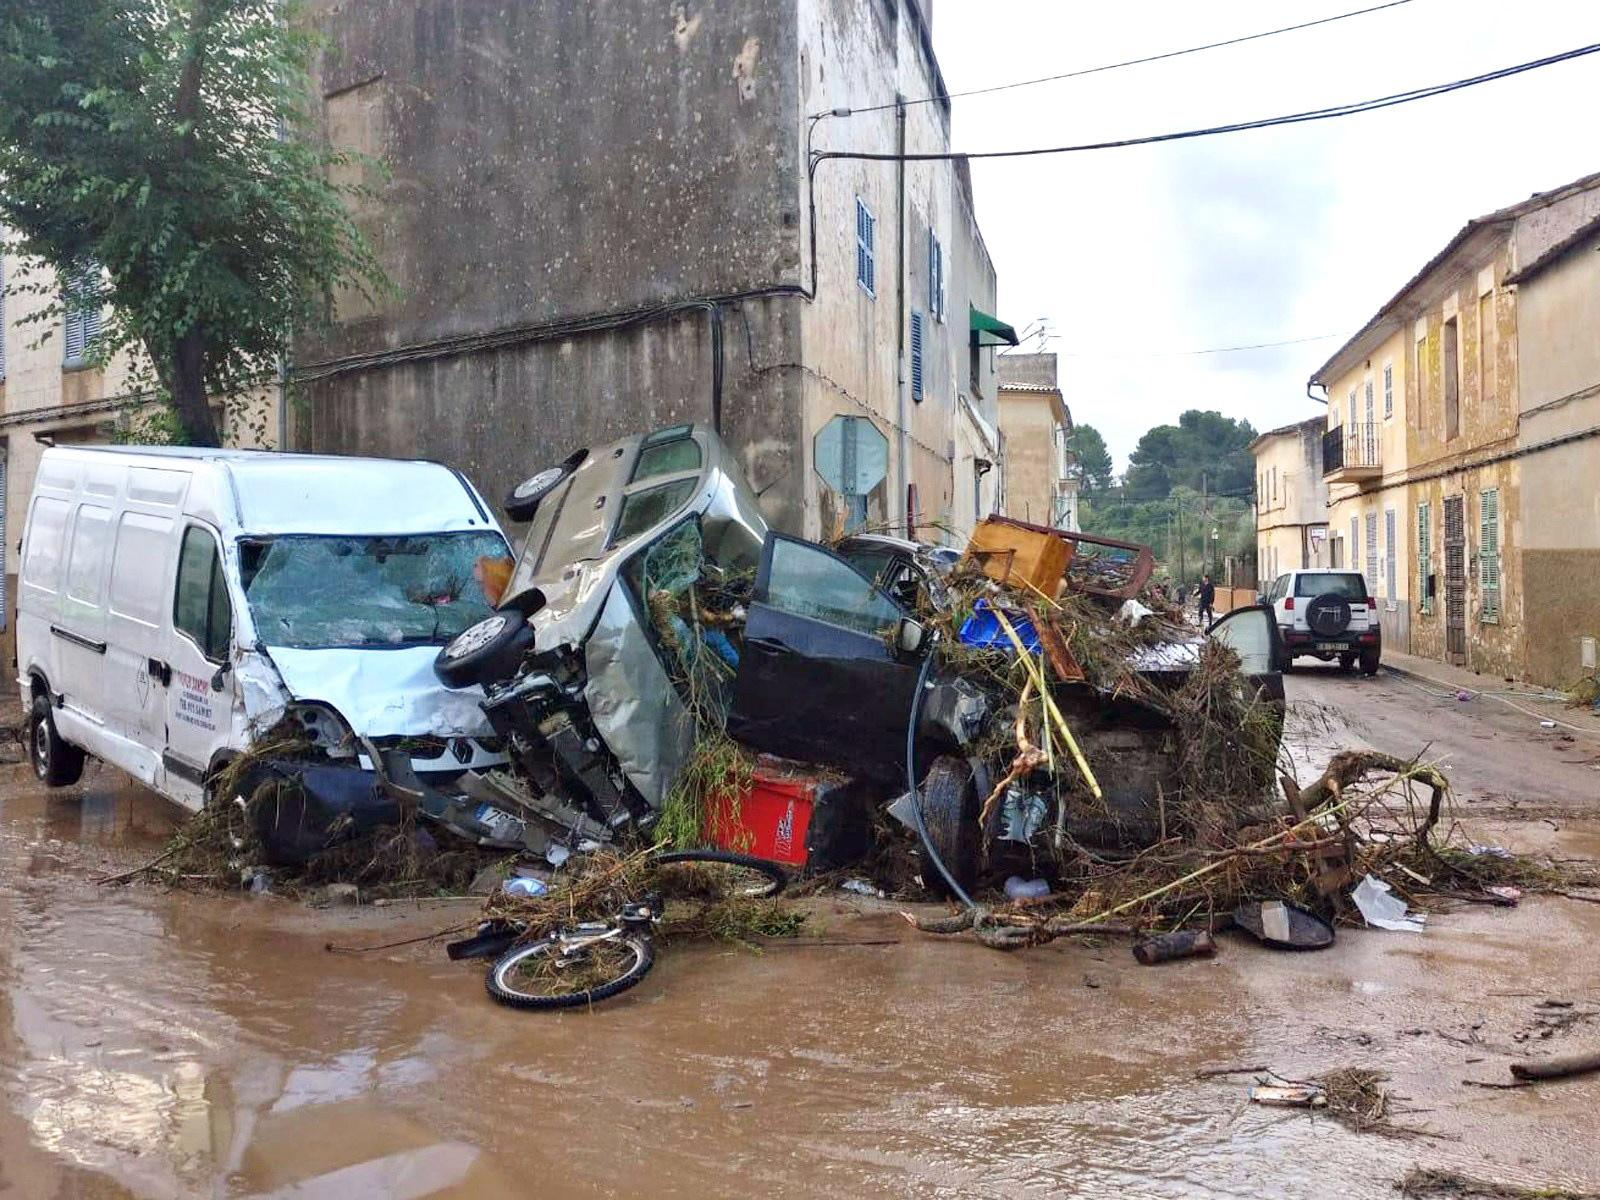 Torrential rain on Tuesday night claimed at least nine lives on the Spanish island